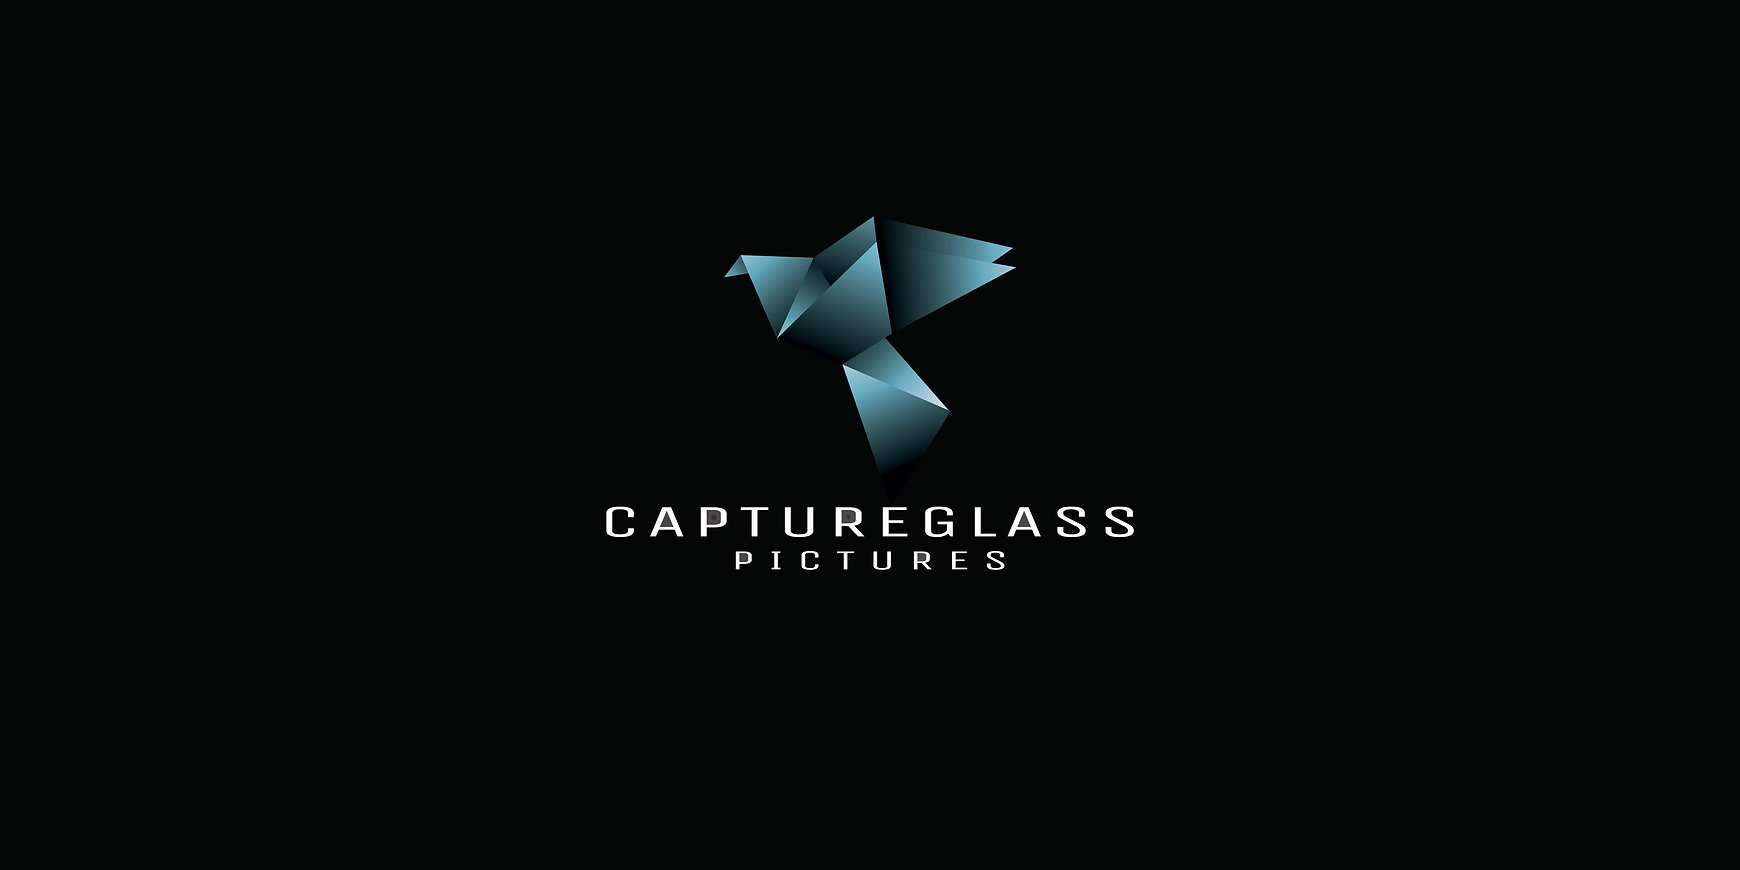 Captureglass Pictures